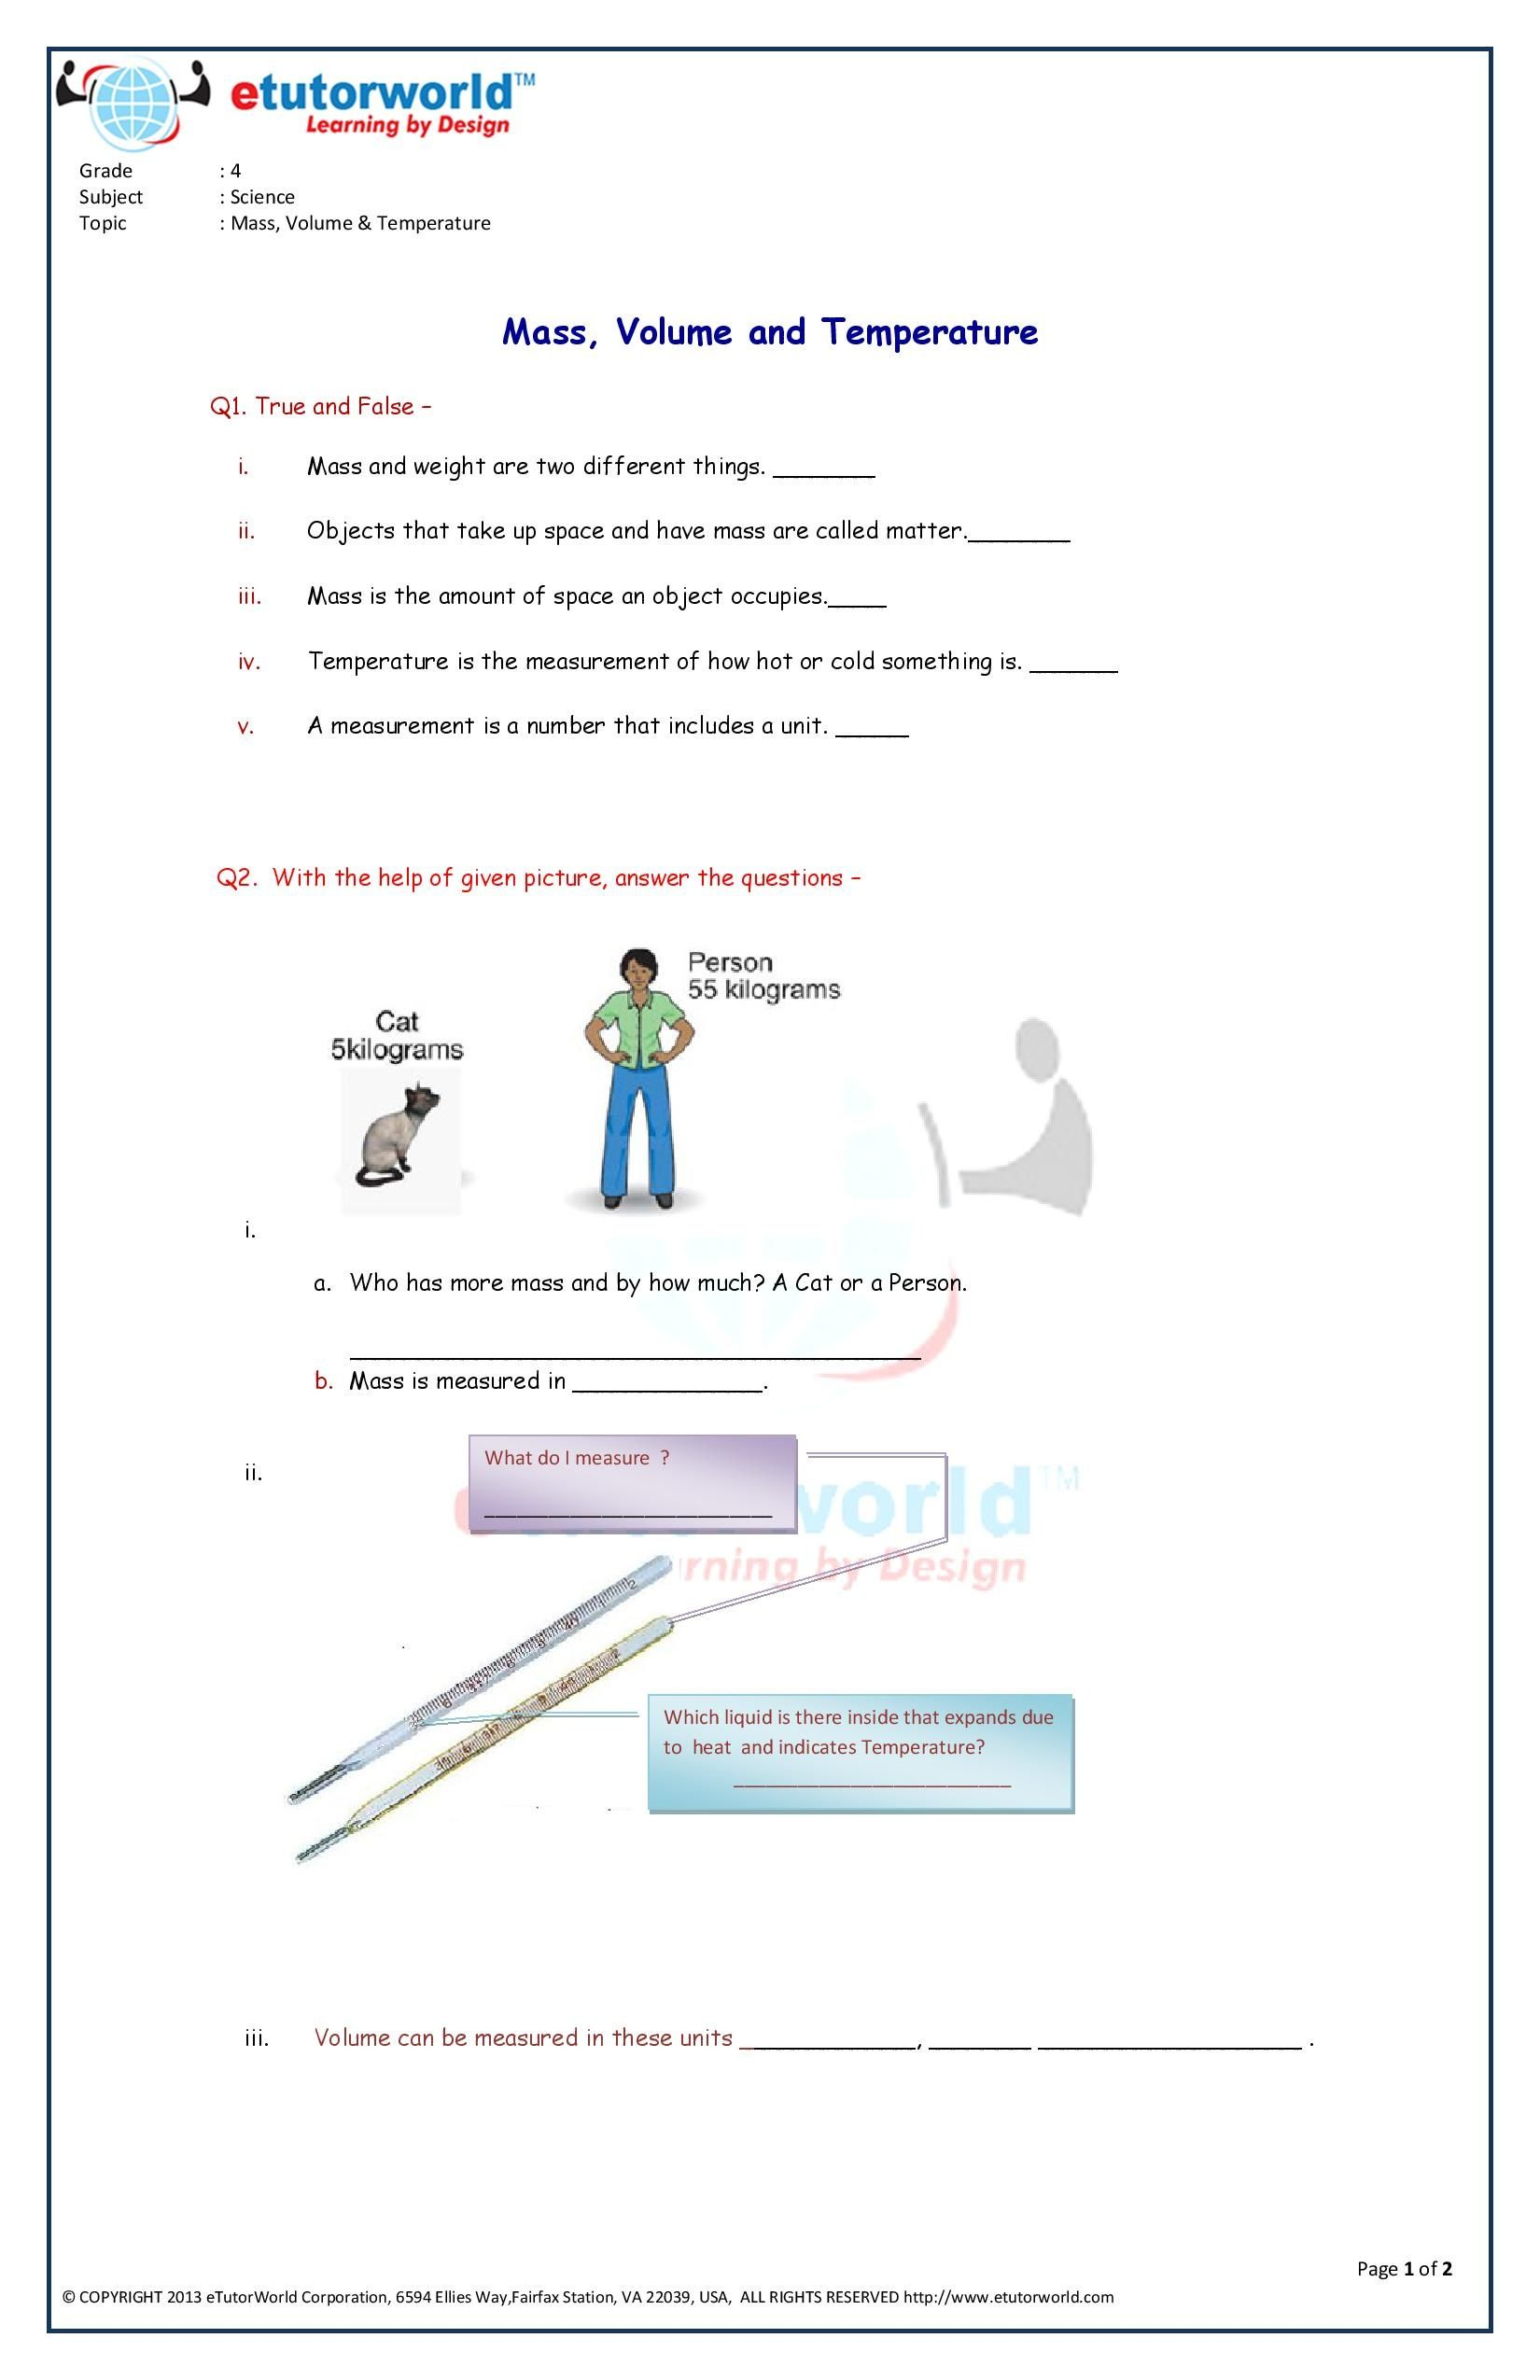 medium resolution of Pin by Candice Adams on Grade 4 Science Worksheets   Science worksheets